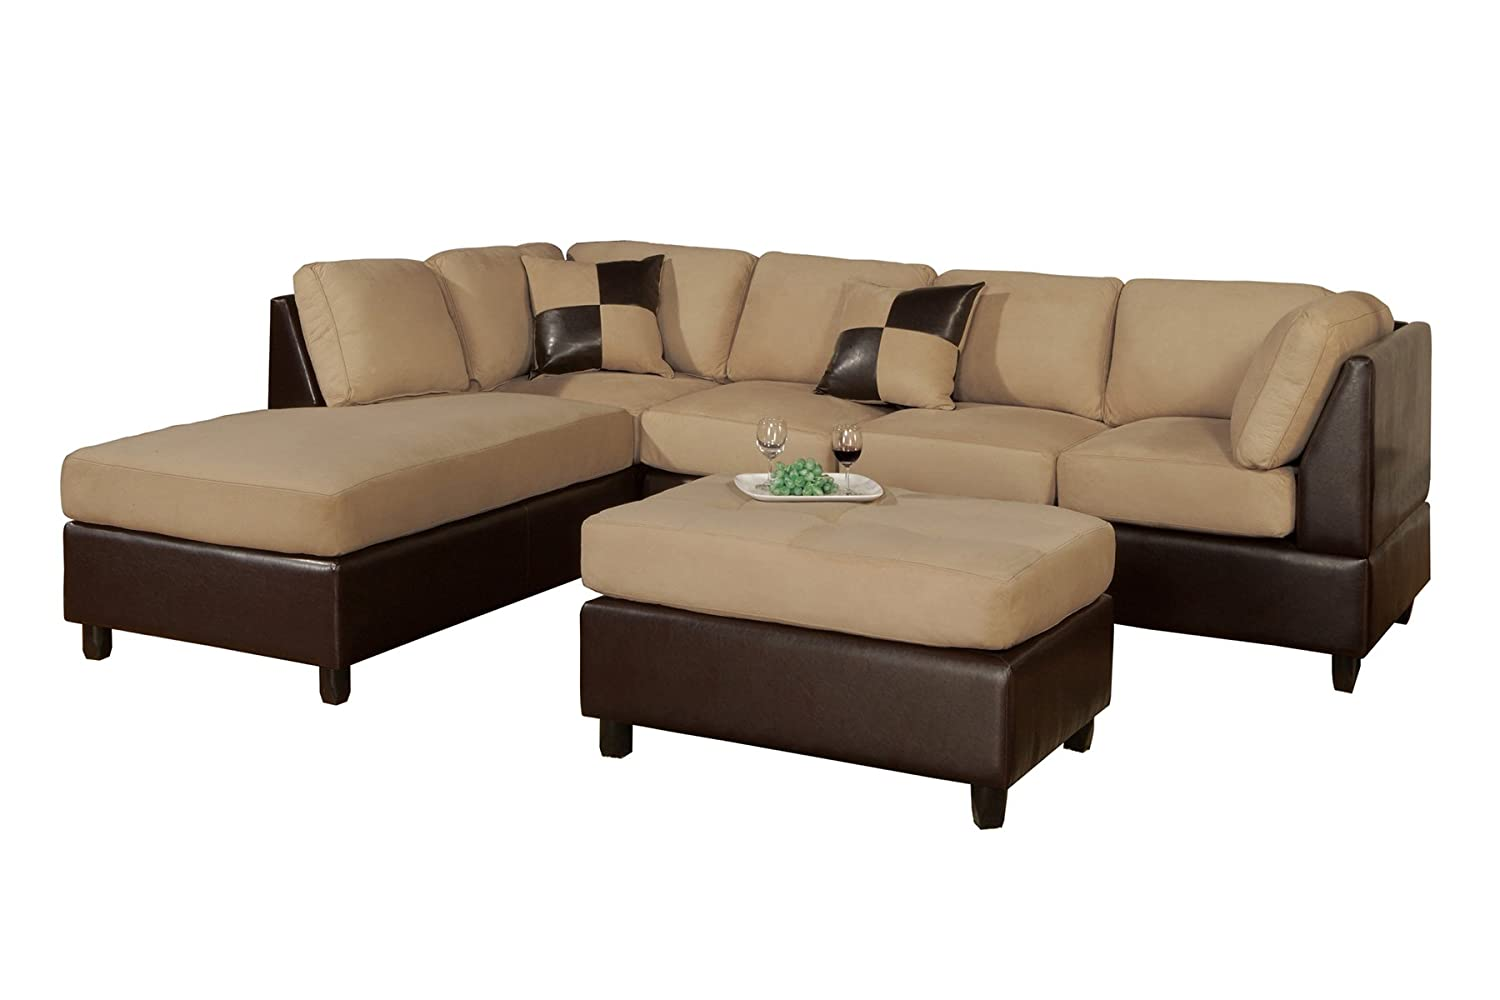 62640 bobkona hungtinton microfiber faux leather 3 piece for Microfiber faux leather 3 piece sectional sofa set